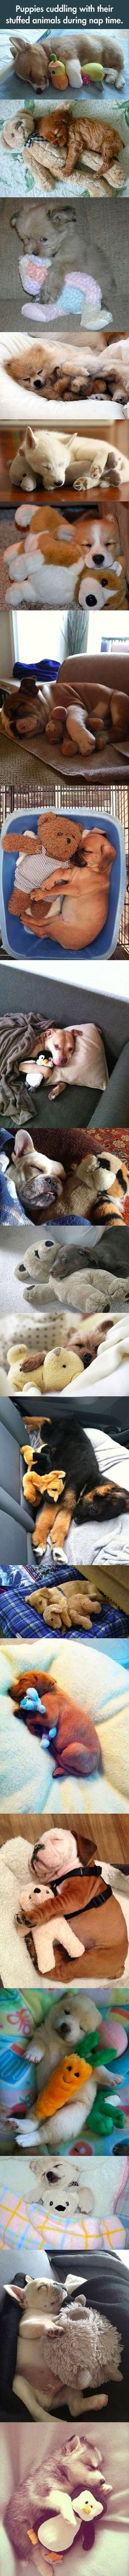 Sleeping and cuddling.